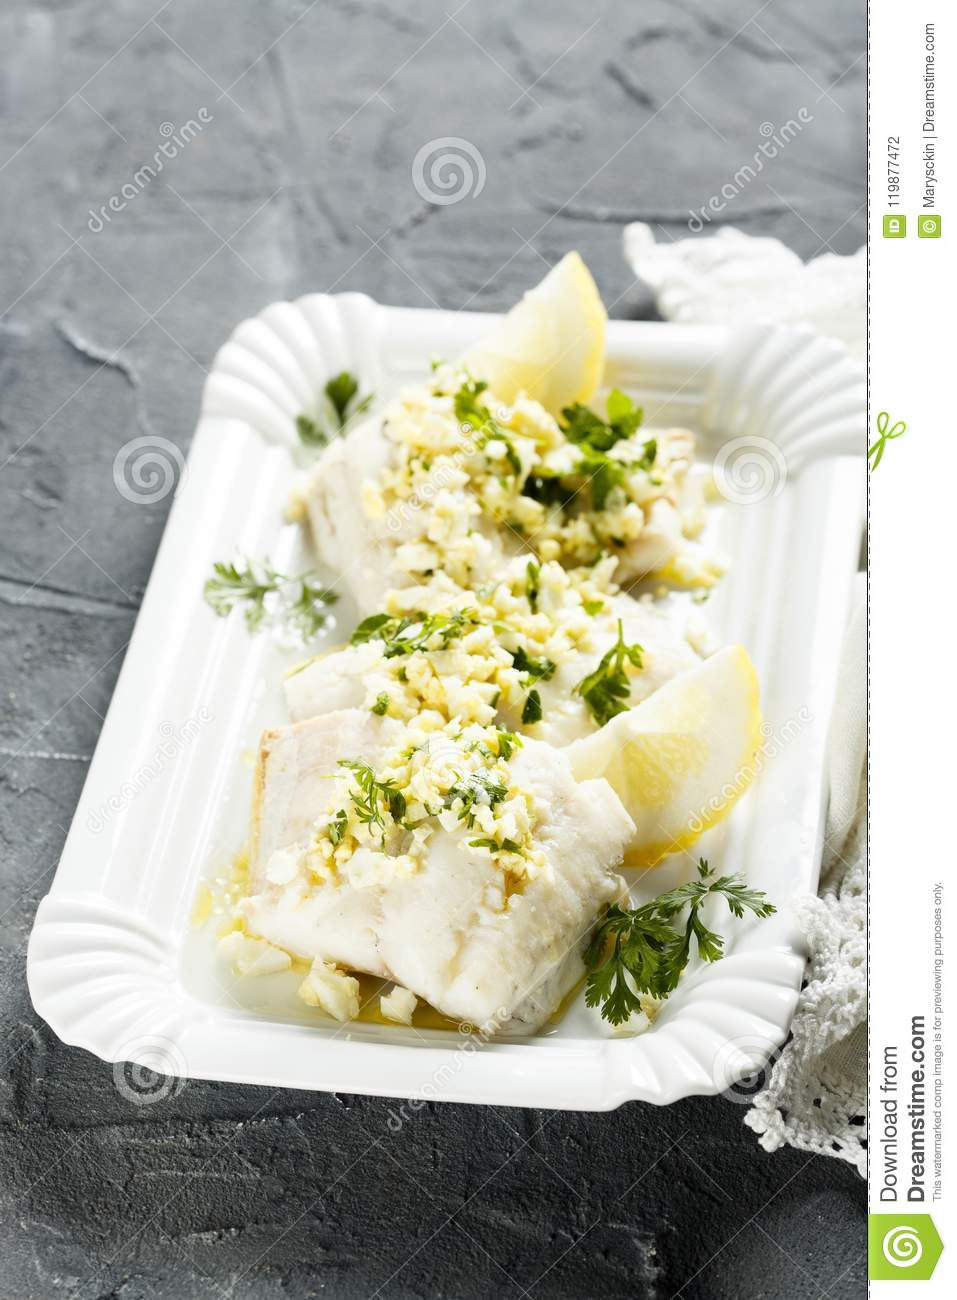 White fish cooked with parsley and lemon sauce